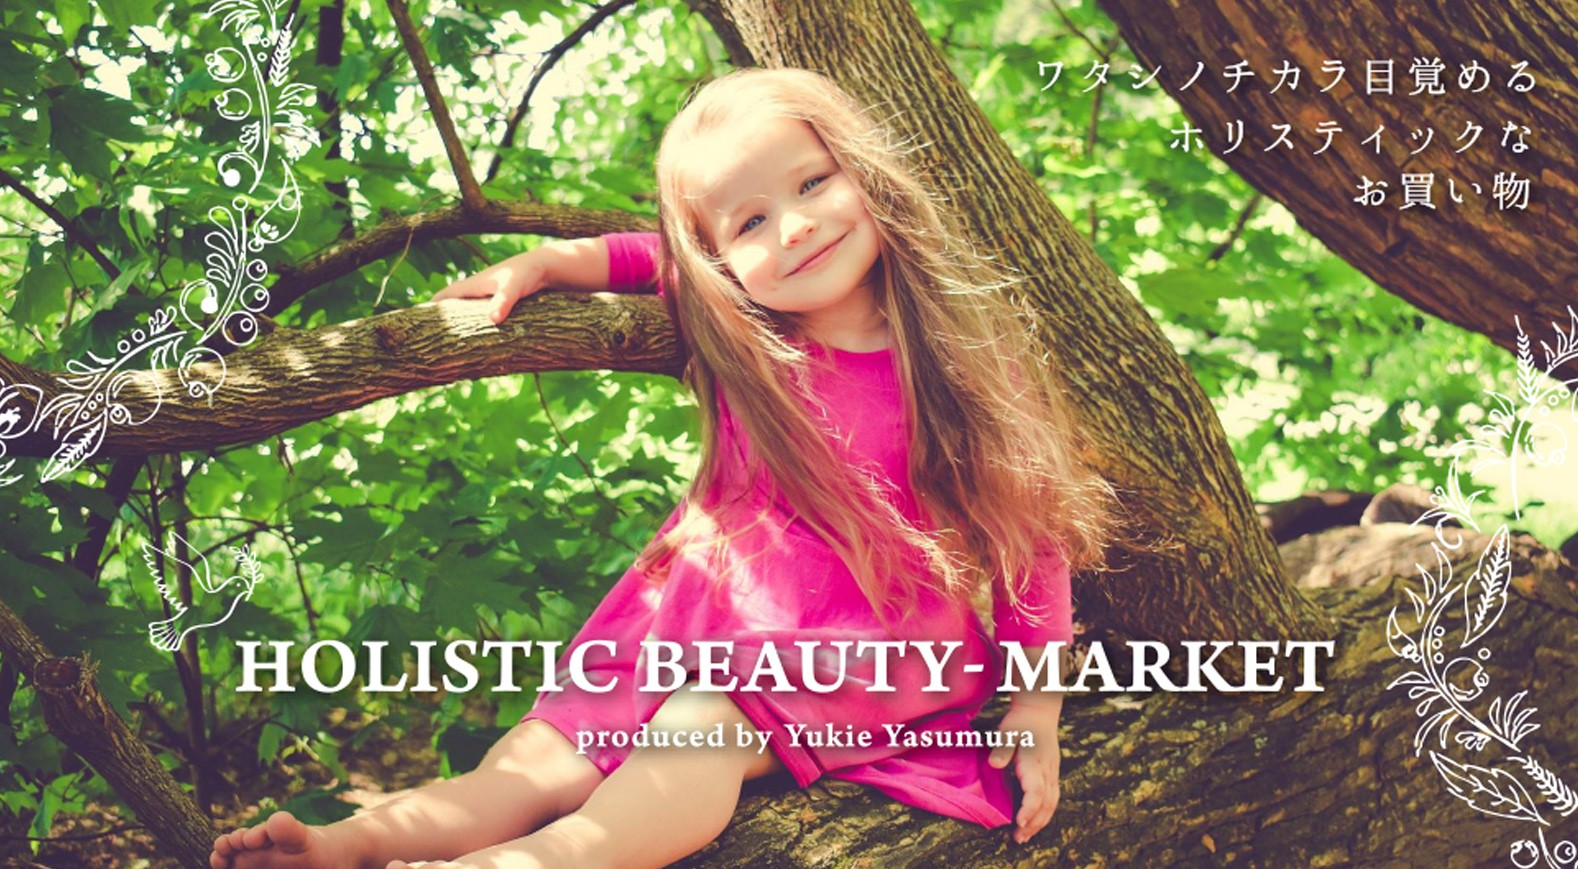 HOLISTIC BEAUTY - MARKET